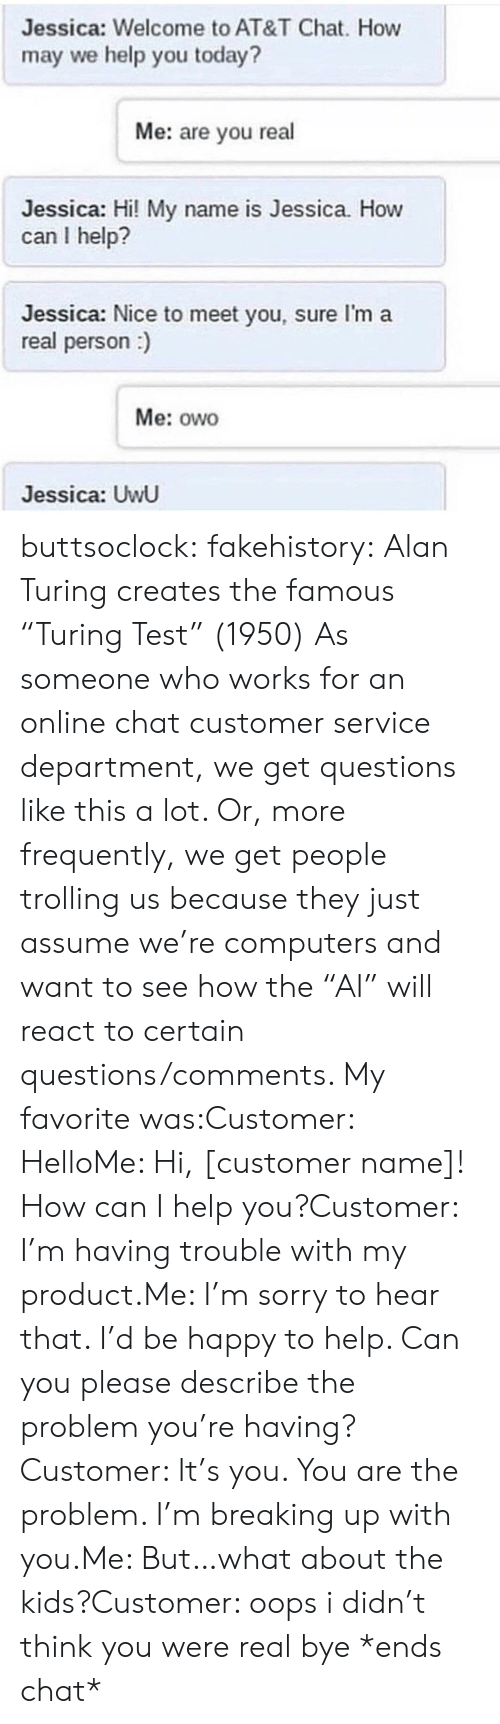 """Computers, Hello, and Sorry: Jessica: Welcome to AT&T Chat. How  may we help you today?  Me: are you real  Jessica: Hi! My name is Jessica. How  can I help?  Jessica: Nice to meet you, sure I'm a  real person)  Me: owo  Jessica: UwU buttsoclock:  fakehistory: Alan Turing creates the famous """"Turing Test"""" (1950) As someone who works for an online chat customer service department, we get questions like this a lot. Or, more frequently, we get people trolling us because they just assume we're computers and want to see how the""""AI"""" will react to certain questions/comments. My favorite was:Customer: HelloMe: Hi, [customer name]! How can I help you?Customer: I'm having trouble with my product.Me: I'm sorry to hear that. I'd be happy to help. Can you please describe the problem you're having?Customer: It's you. You are the problem. I'm breaking up with you.Me: But…what about the kids?Customer: oops i didn't think you were real bye *ends chat*"""